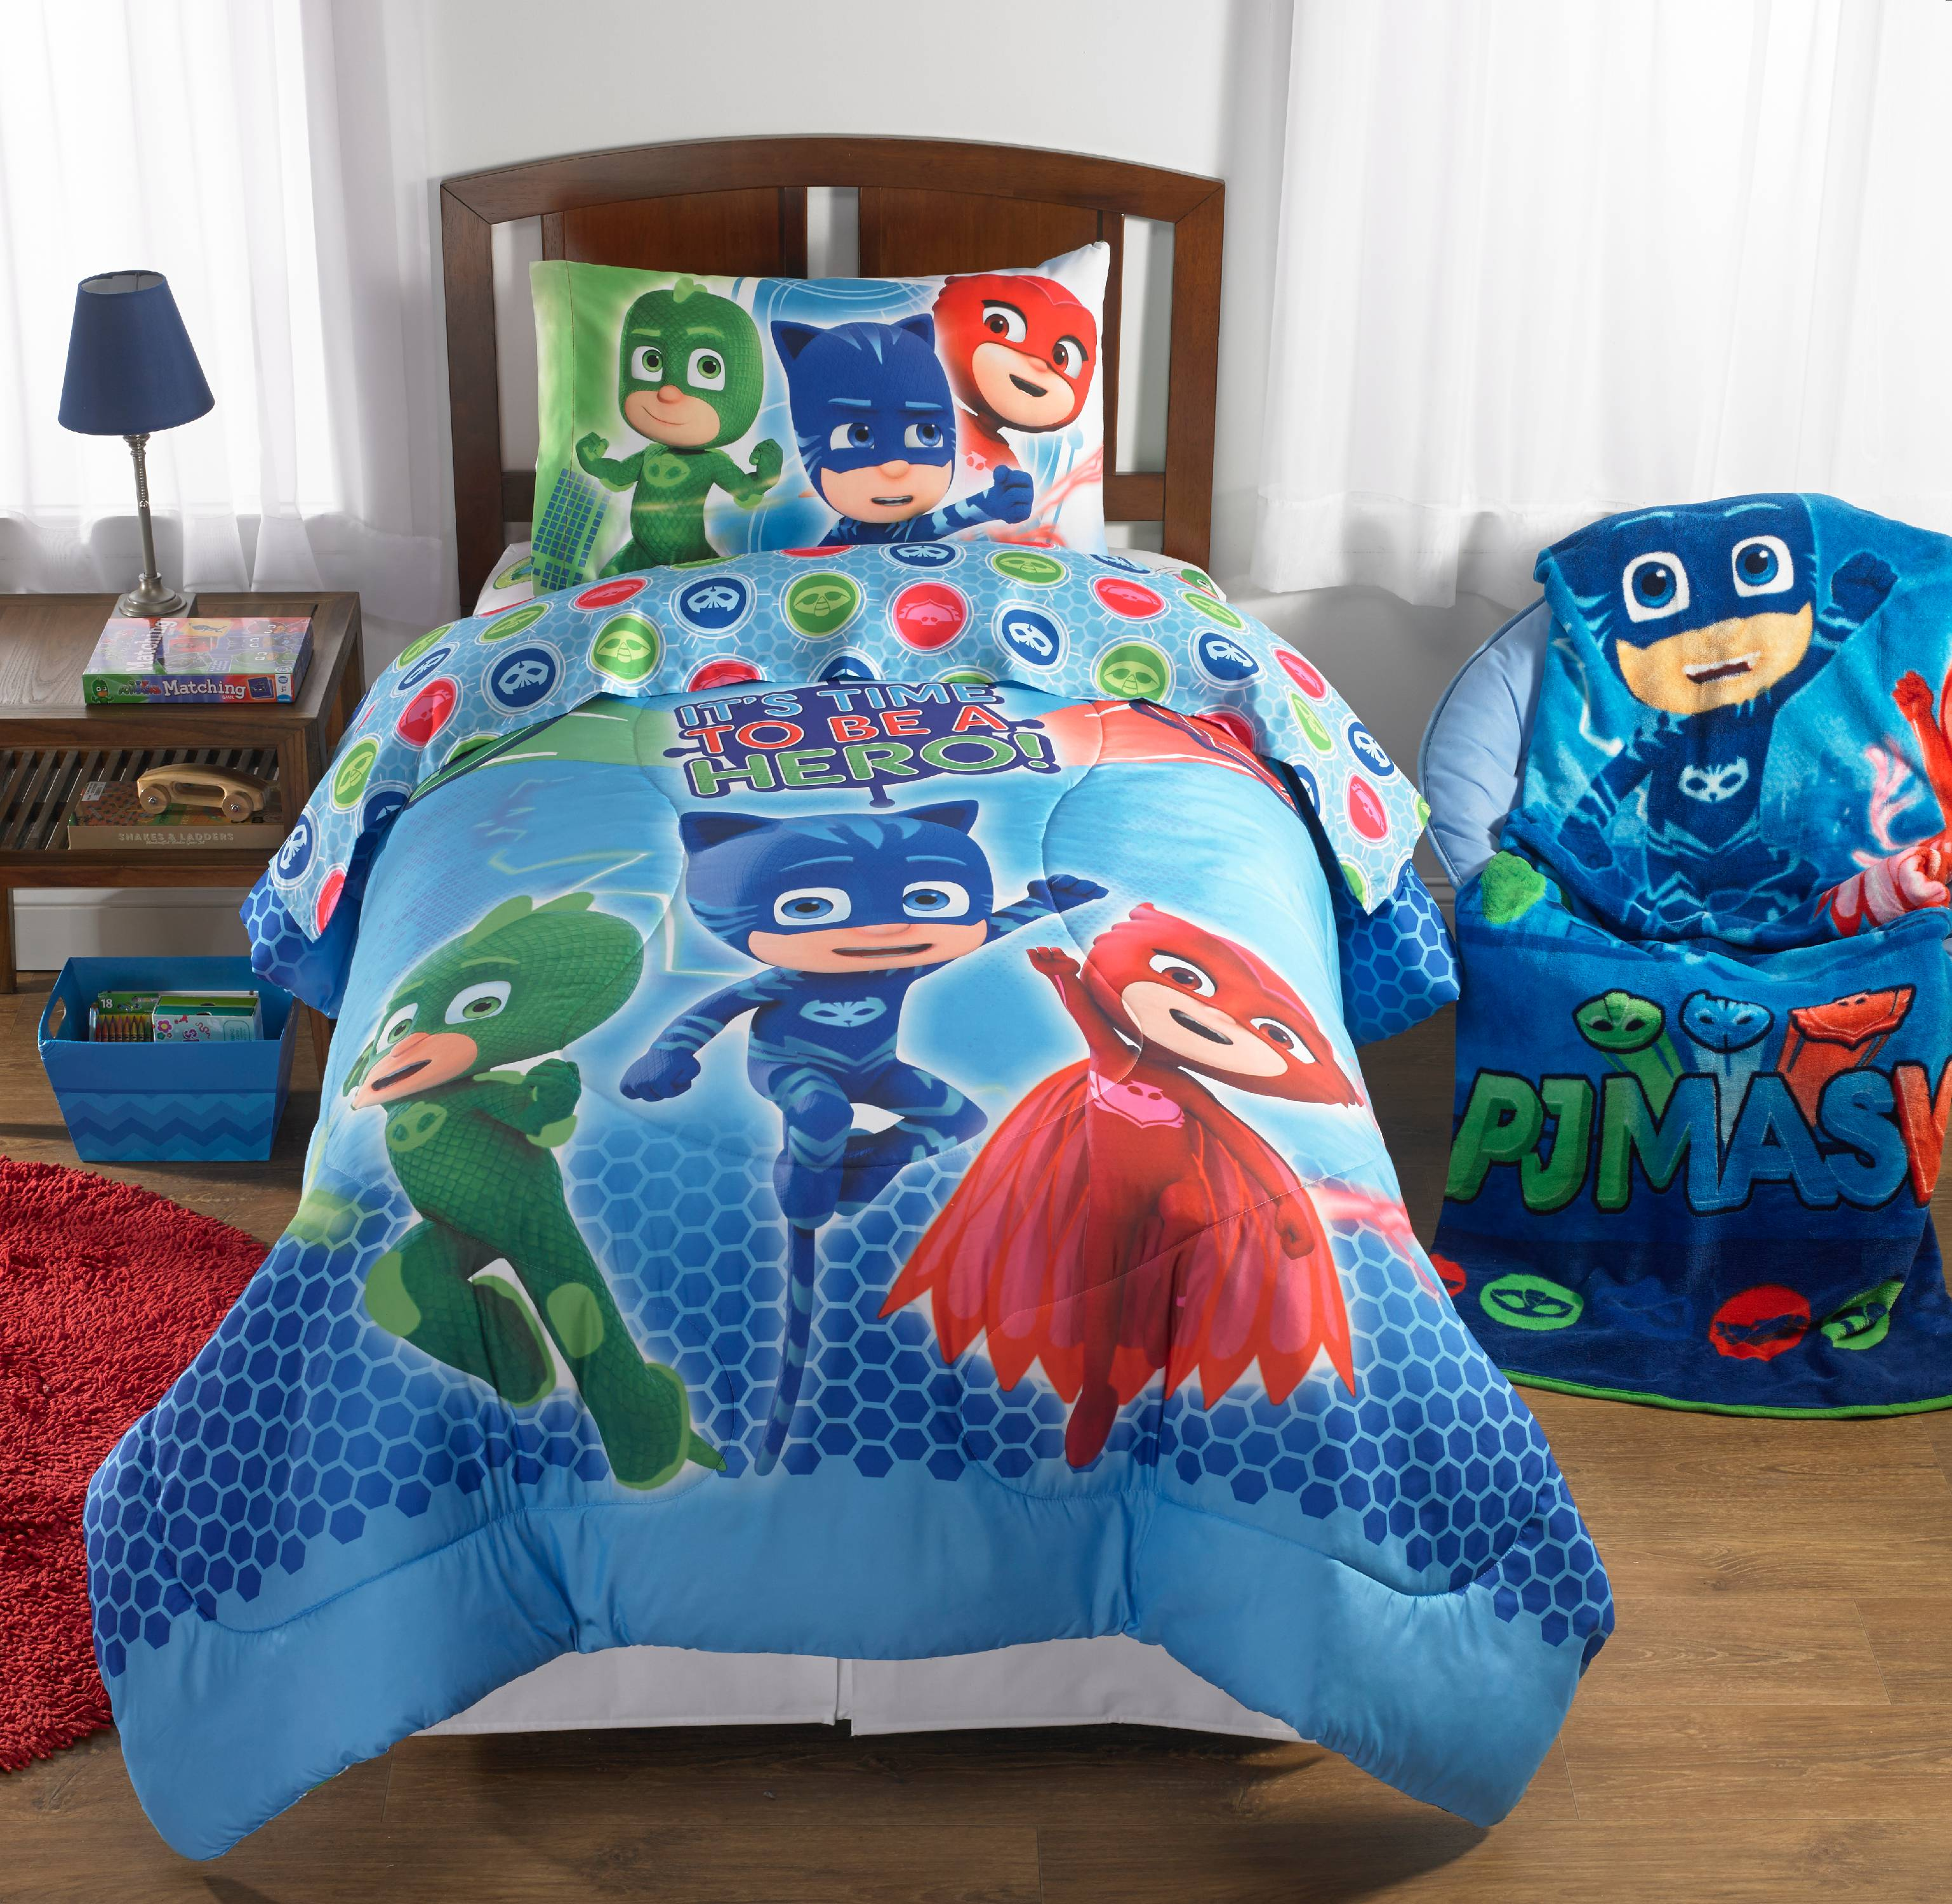 PJ Masks Bed in a Bag Bedding Set